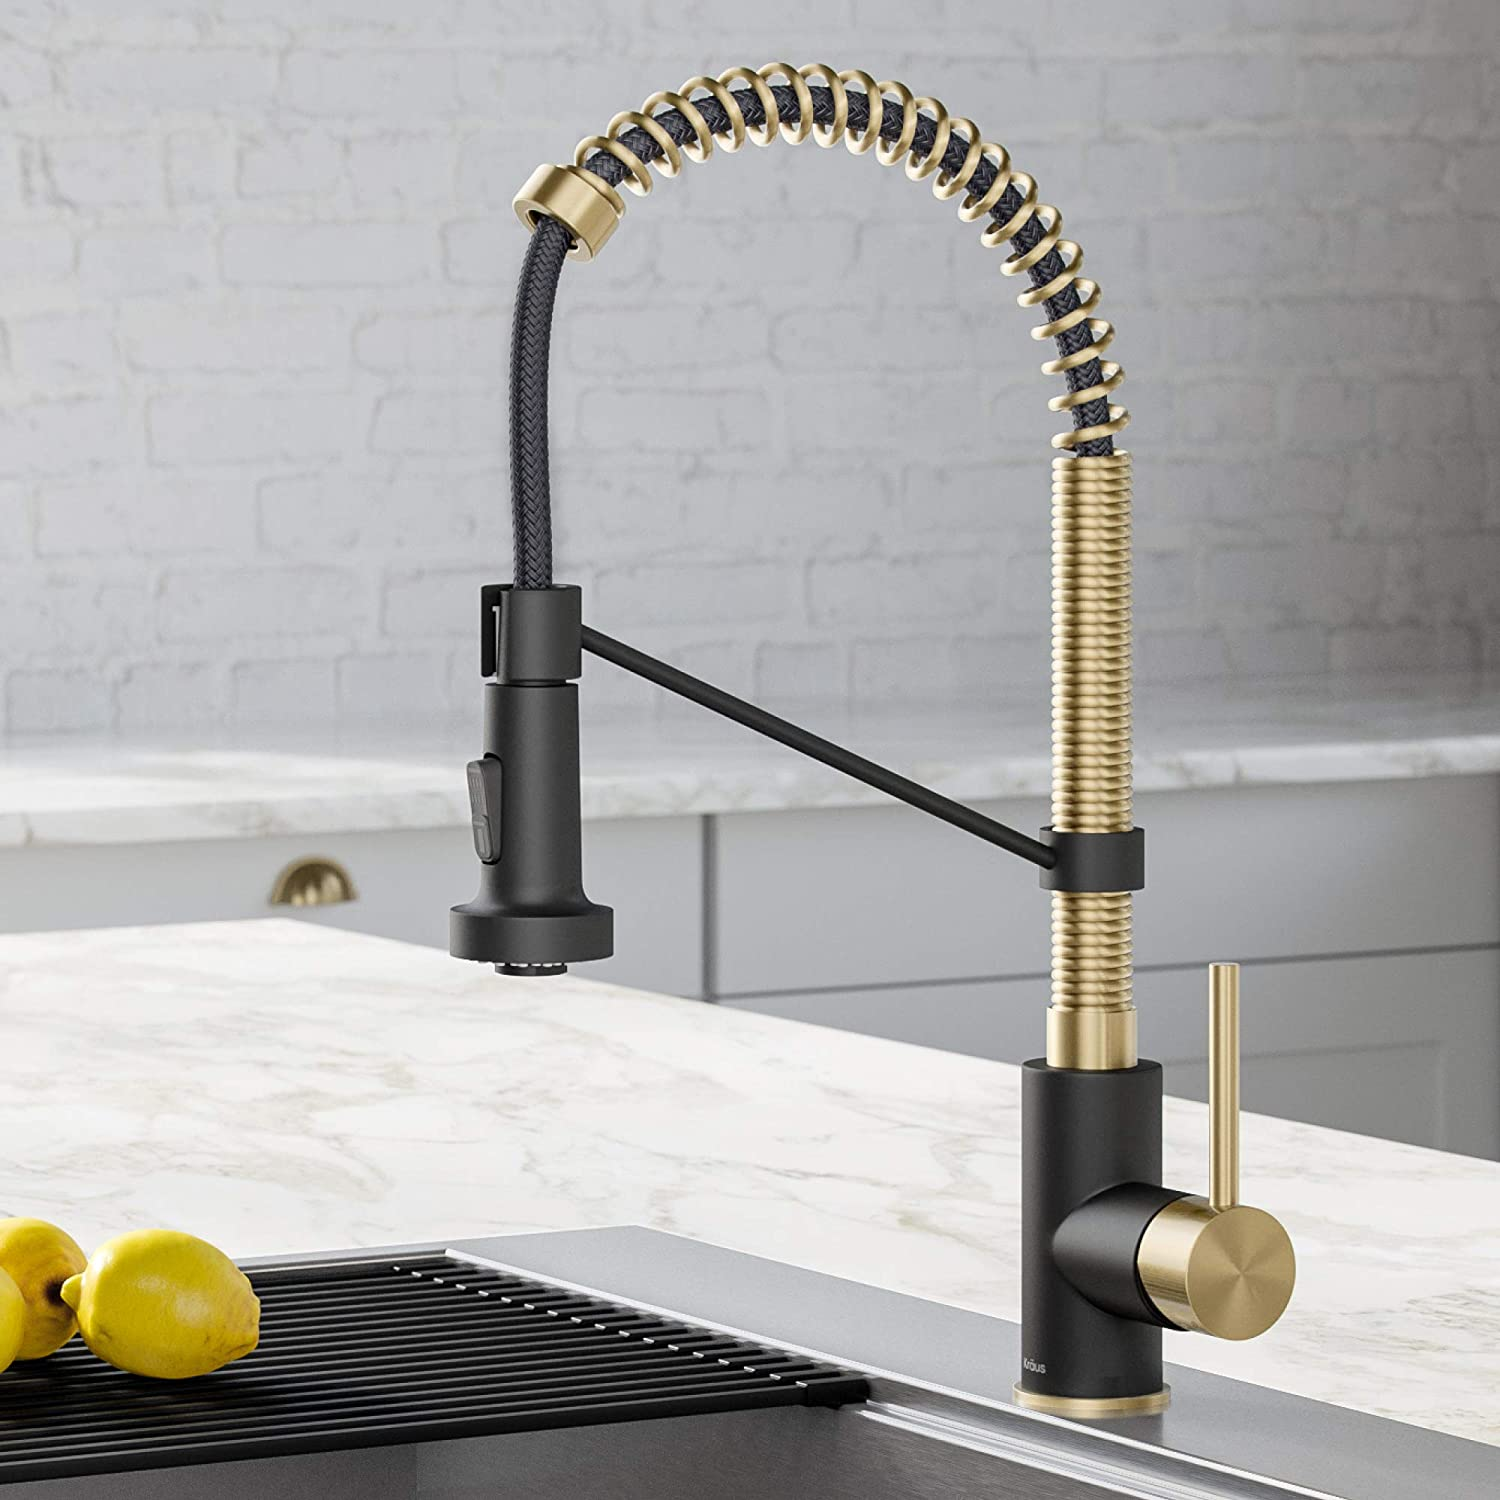 Kraus Kpf 1610sfacbmb Bolden 18 Inch Single Handle Commercial Style Pull Down Kitchen Faucet With Dual Function Sprayer Spot Free Antique Champagne Bronze Matte Black Amazon Com